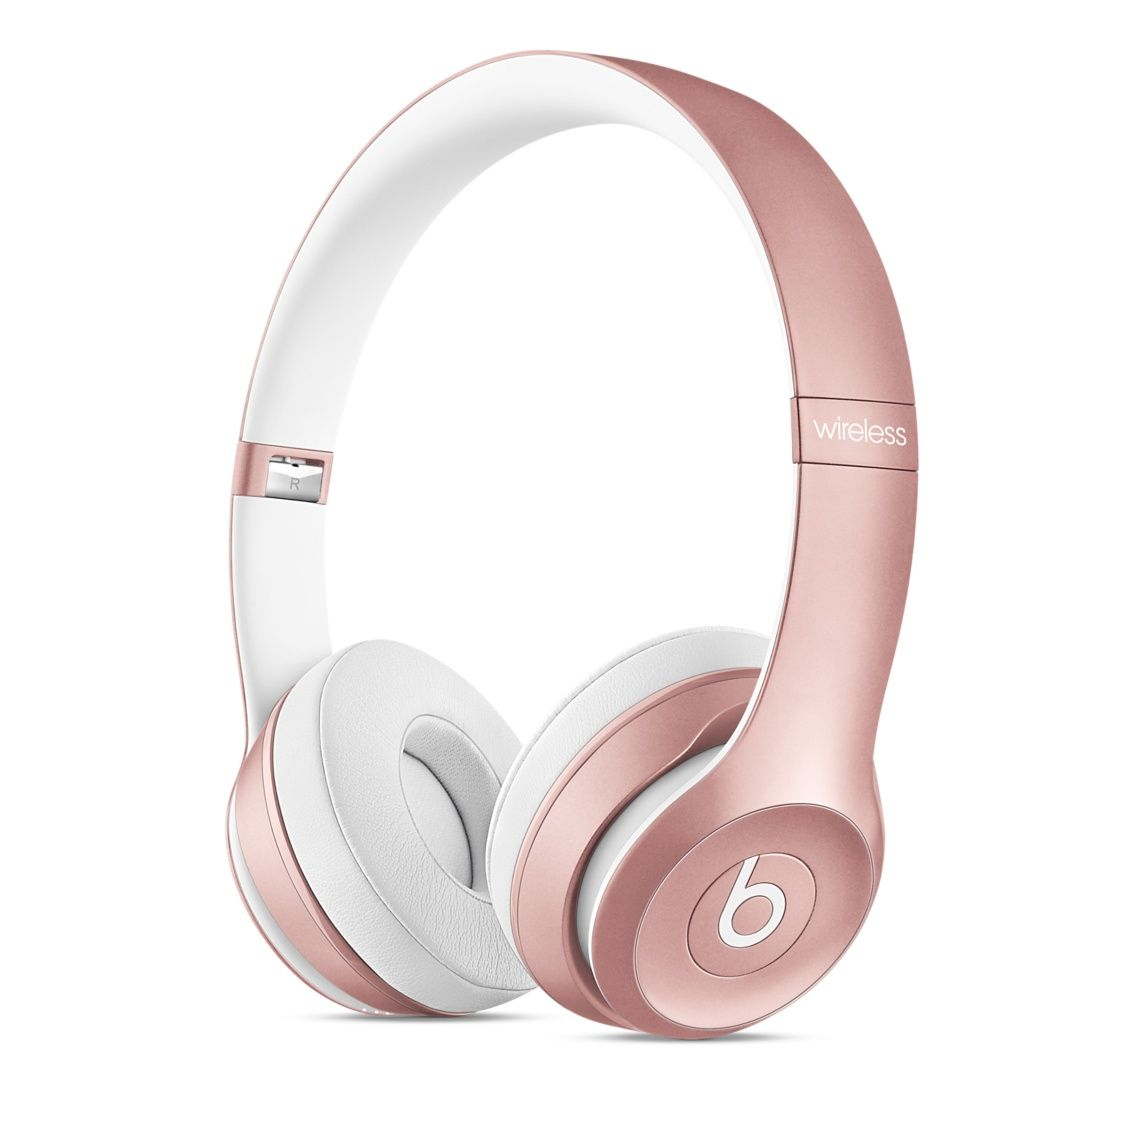 Rose Goldyes I Know Theyre Beats But Have Heard The Newer Headset Bluetooth Super Bass Stn 13 Wereless Hanphone Monster By Drdre Versions Are Much Better